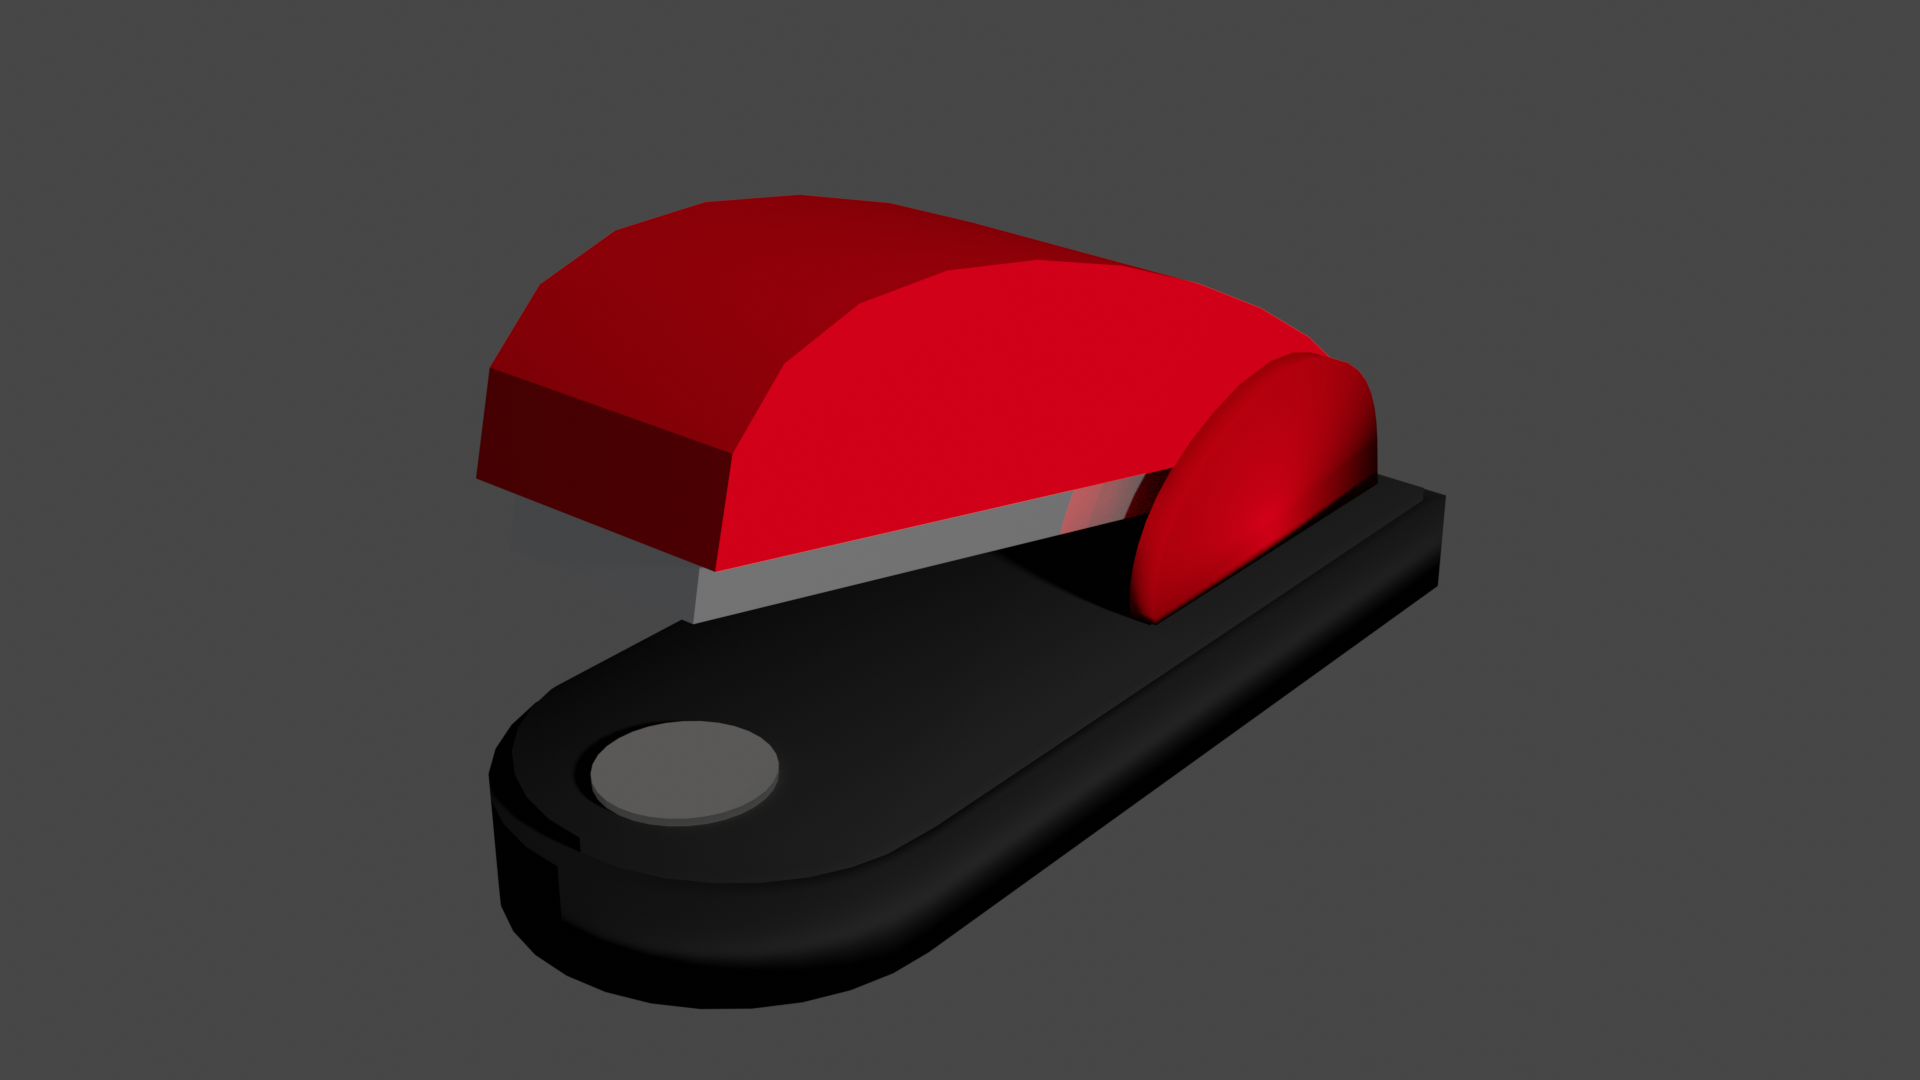 low poly stapler preview image 1